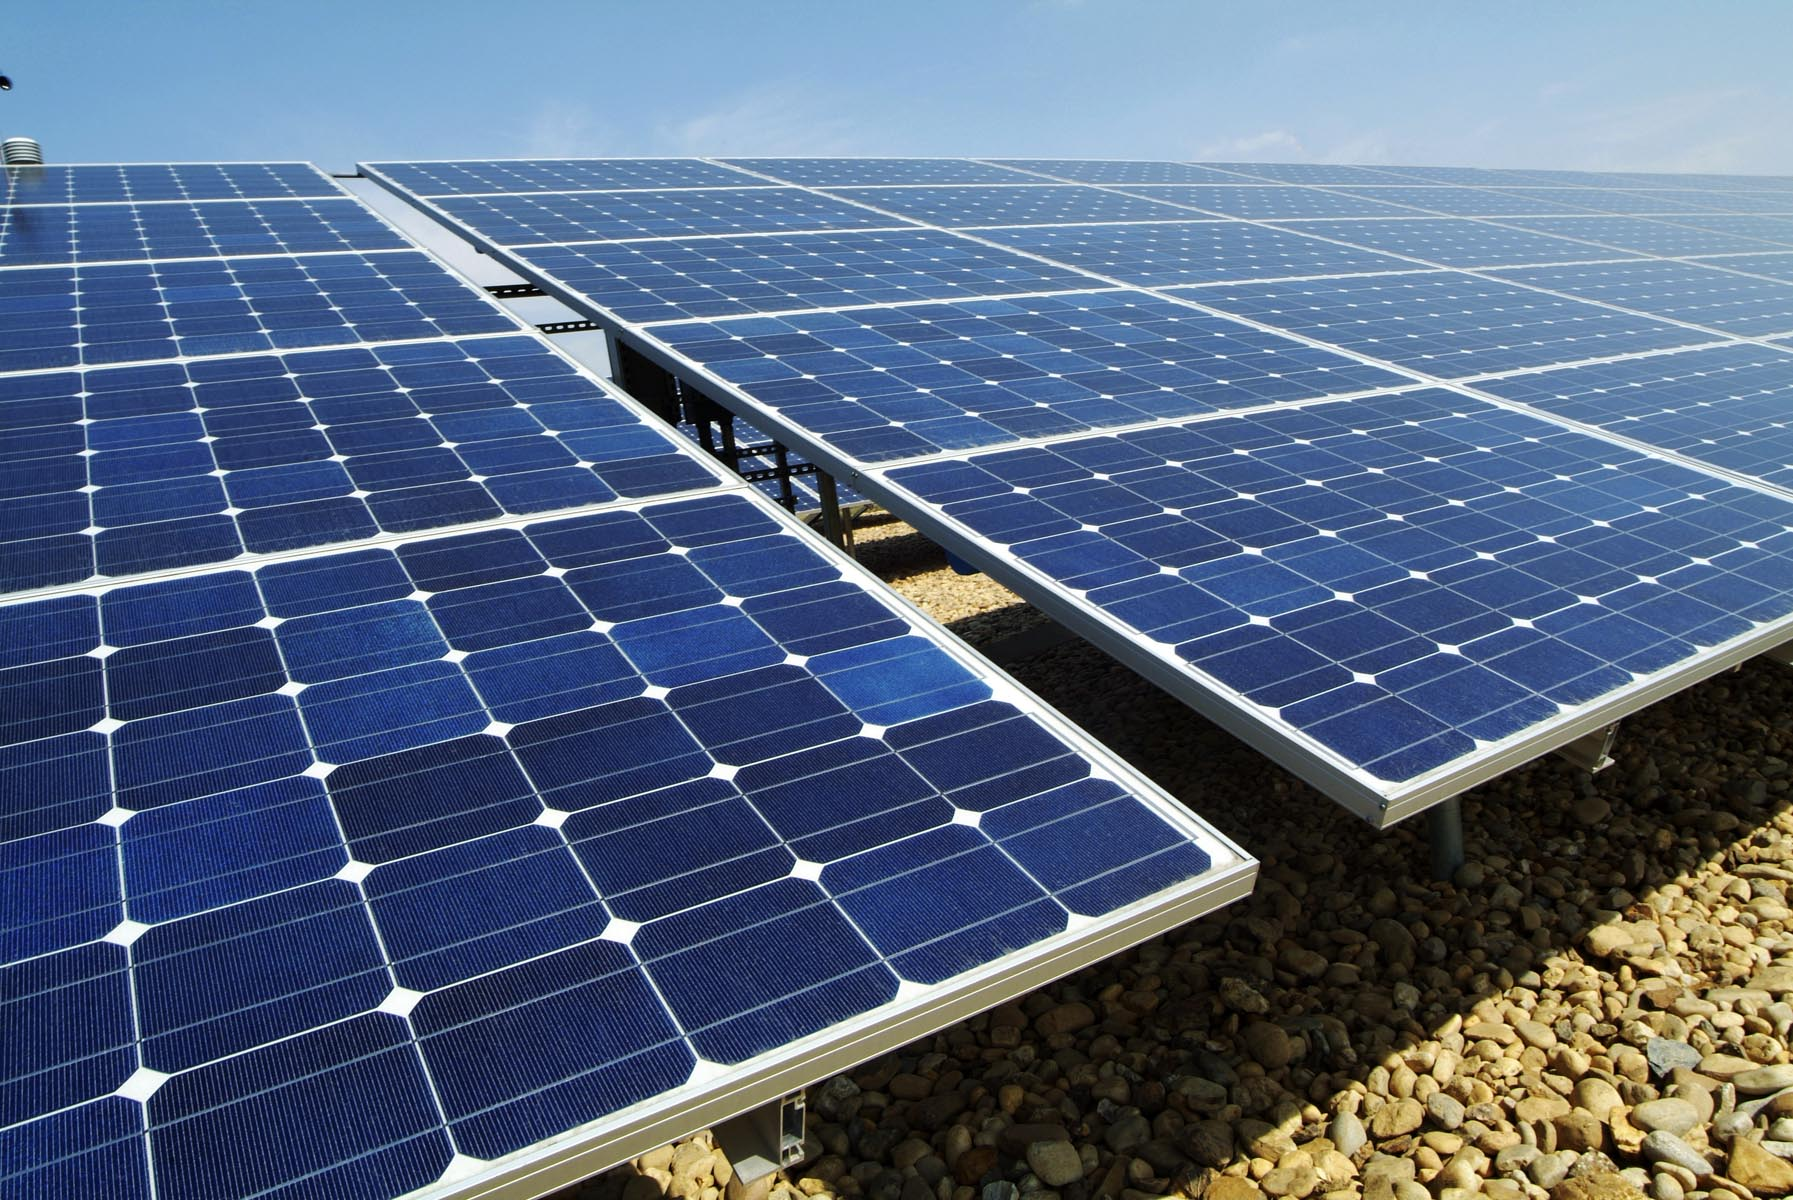 a study on the changes in both solar technologies and the photovoltaic solar business models A case study on bp's solar business case and its the ability to develop and market new technologies or business models: photovoltaic business models.